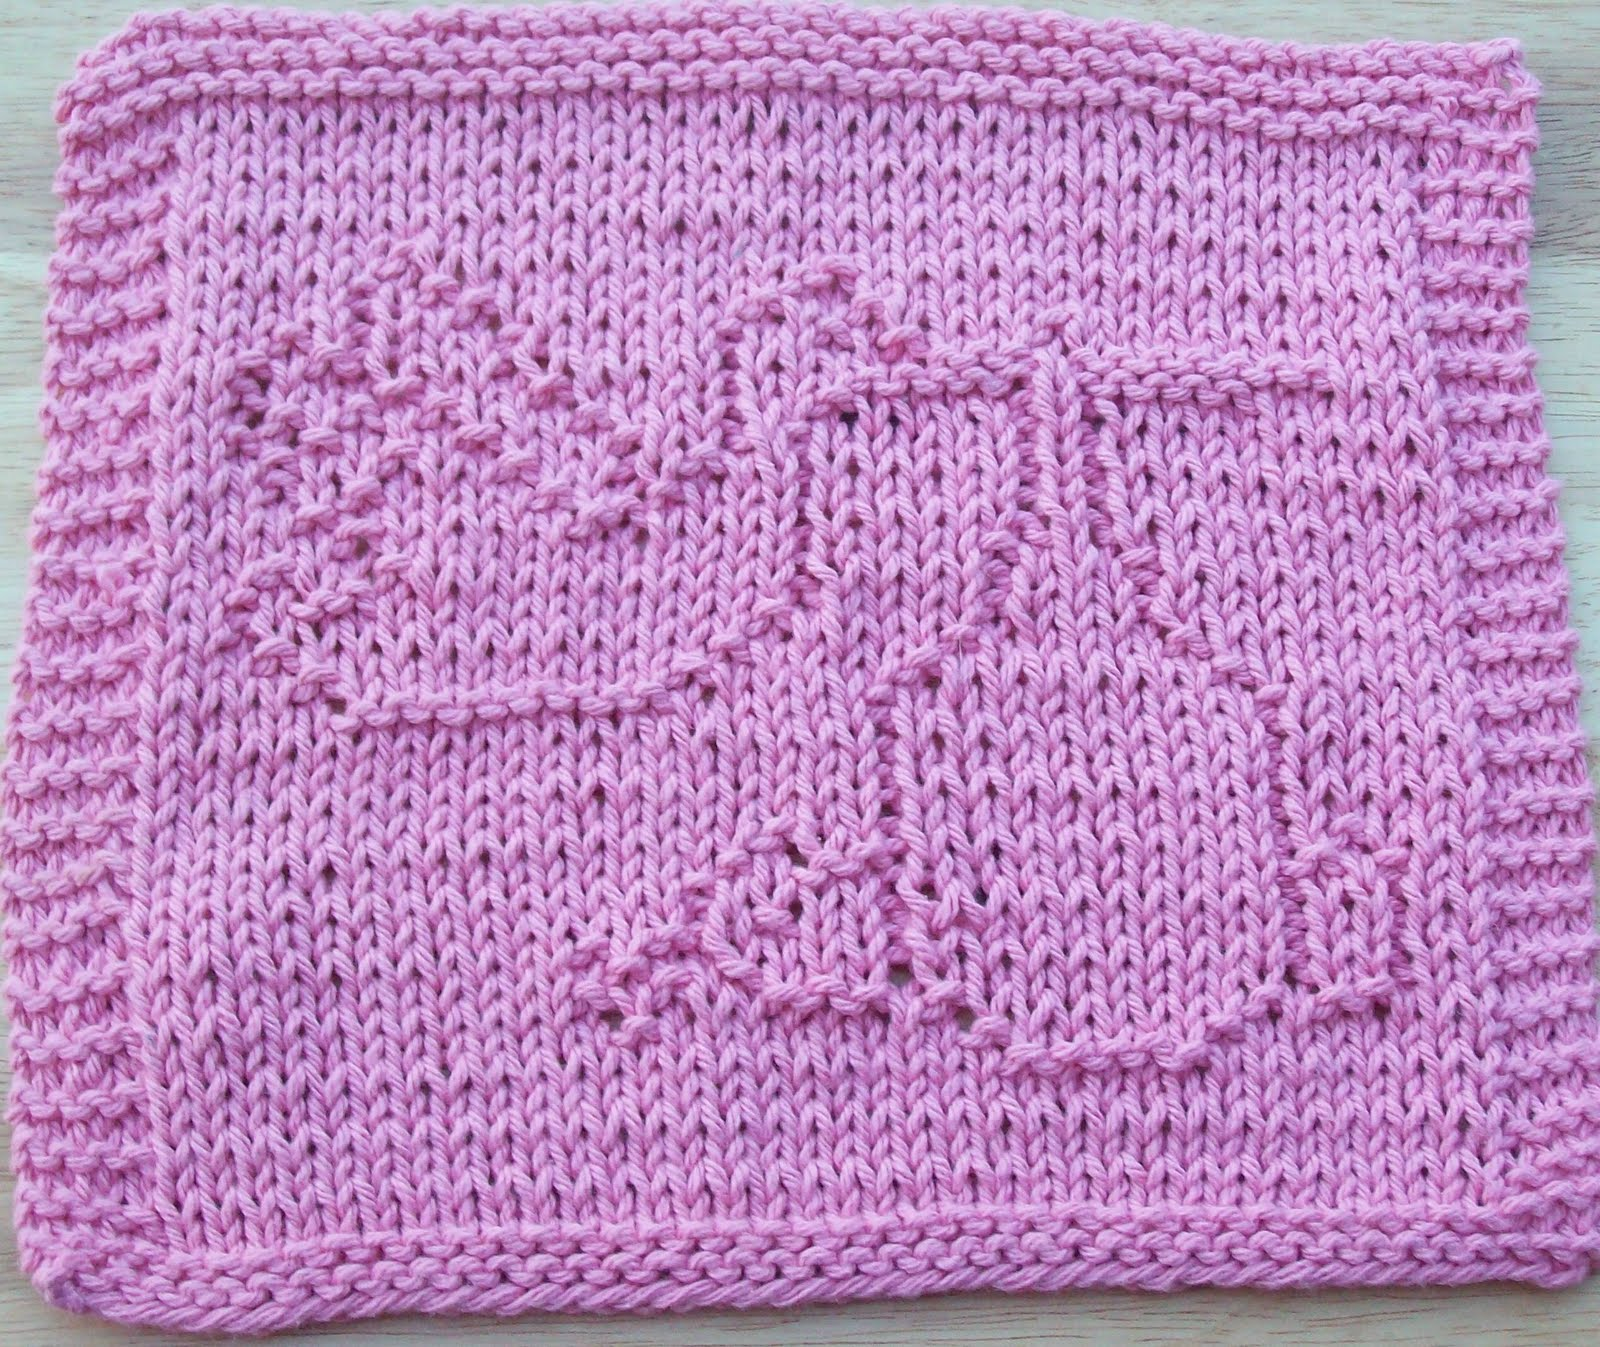 Knit Dishcloths Free Patterns : DigKnitty Designs: Stork Knit Dishcloth Pattern